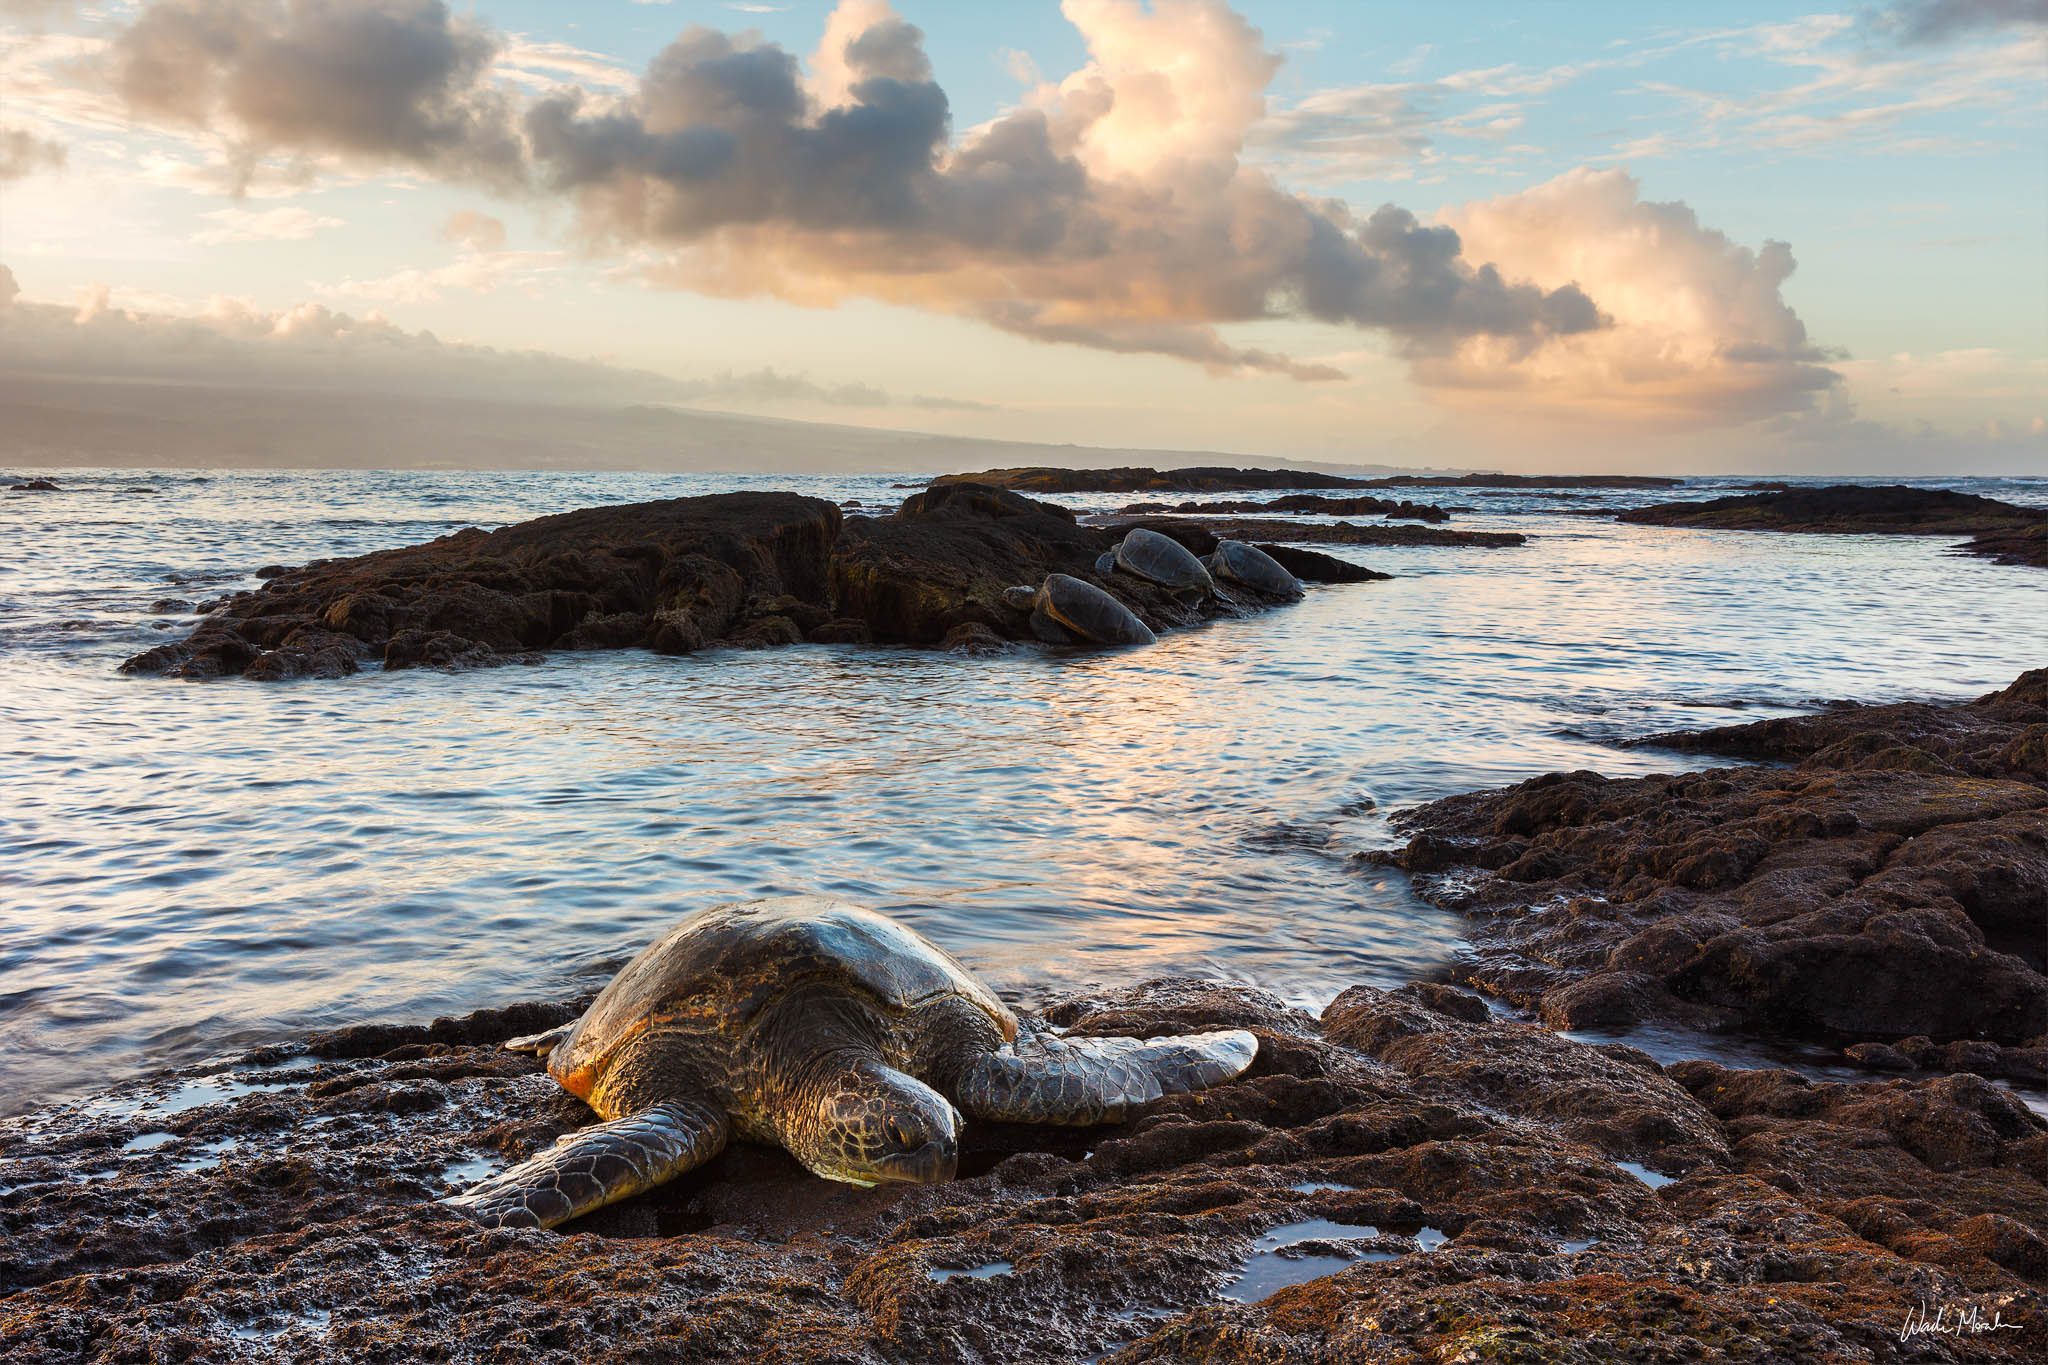 In this image, I photographed 4 beautiful Honu (hawaiian green sea turtles) resting after a long day in paradise. This image...